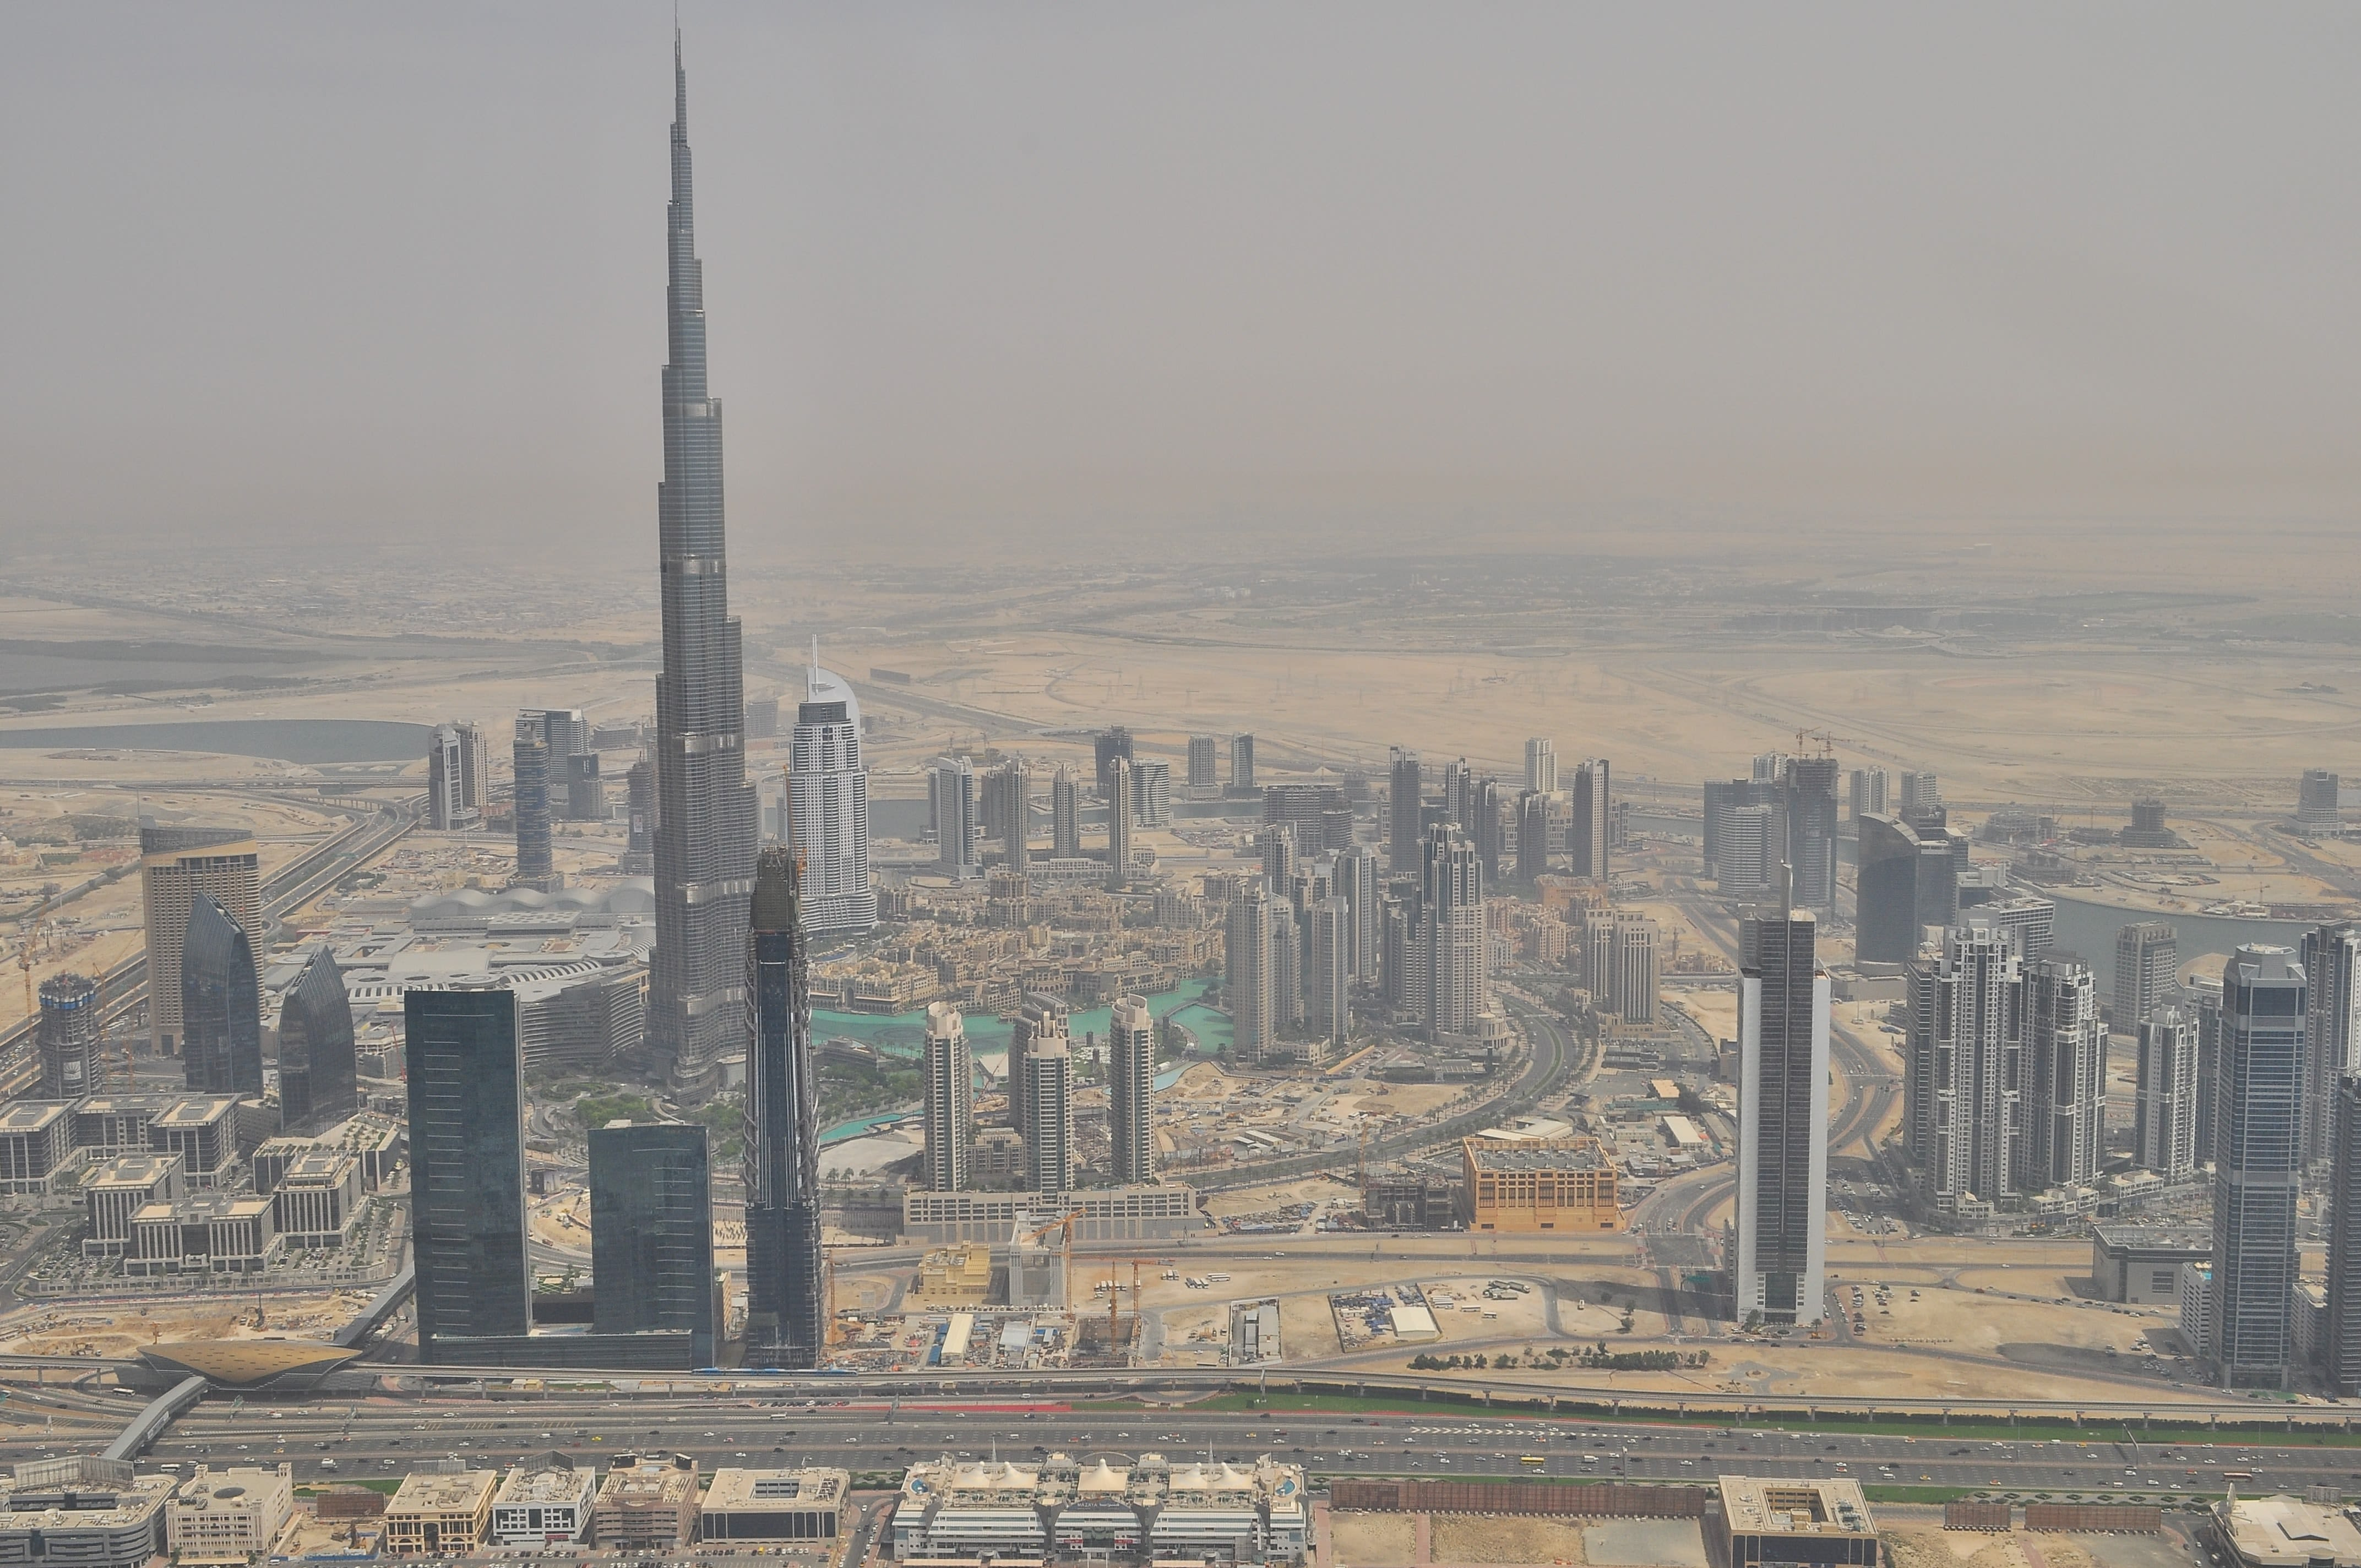 expanding to the UAE